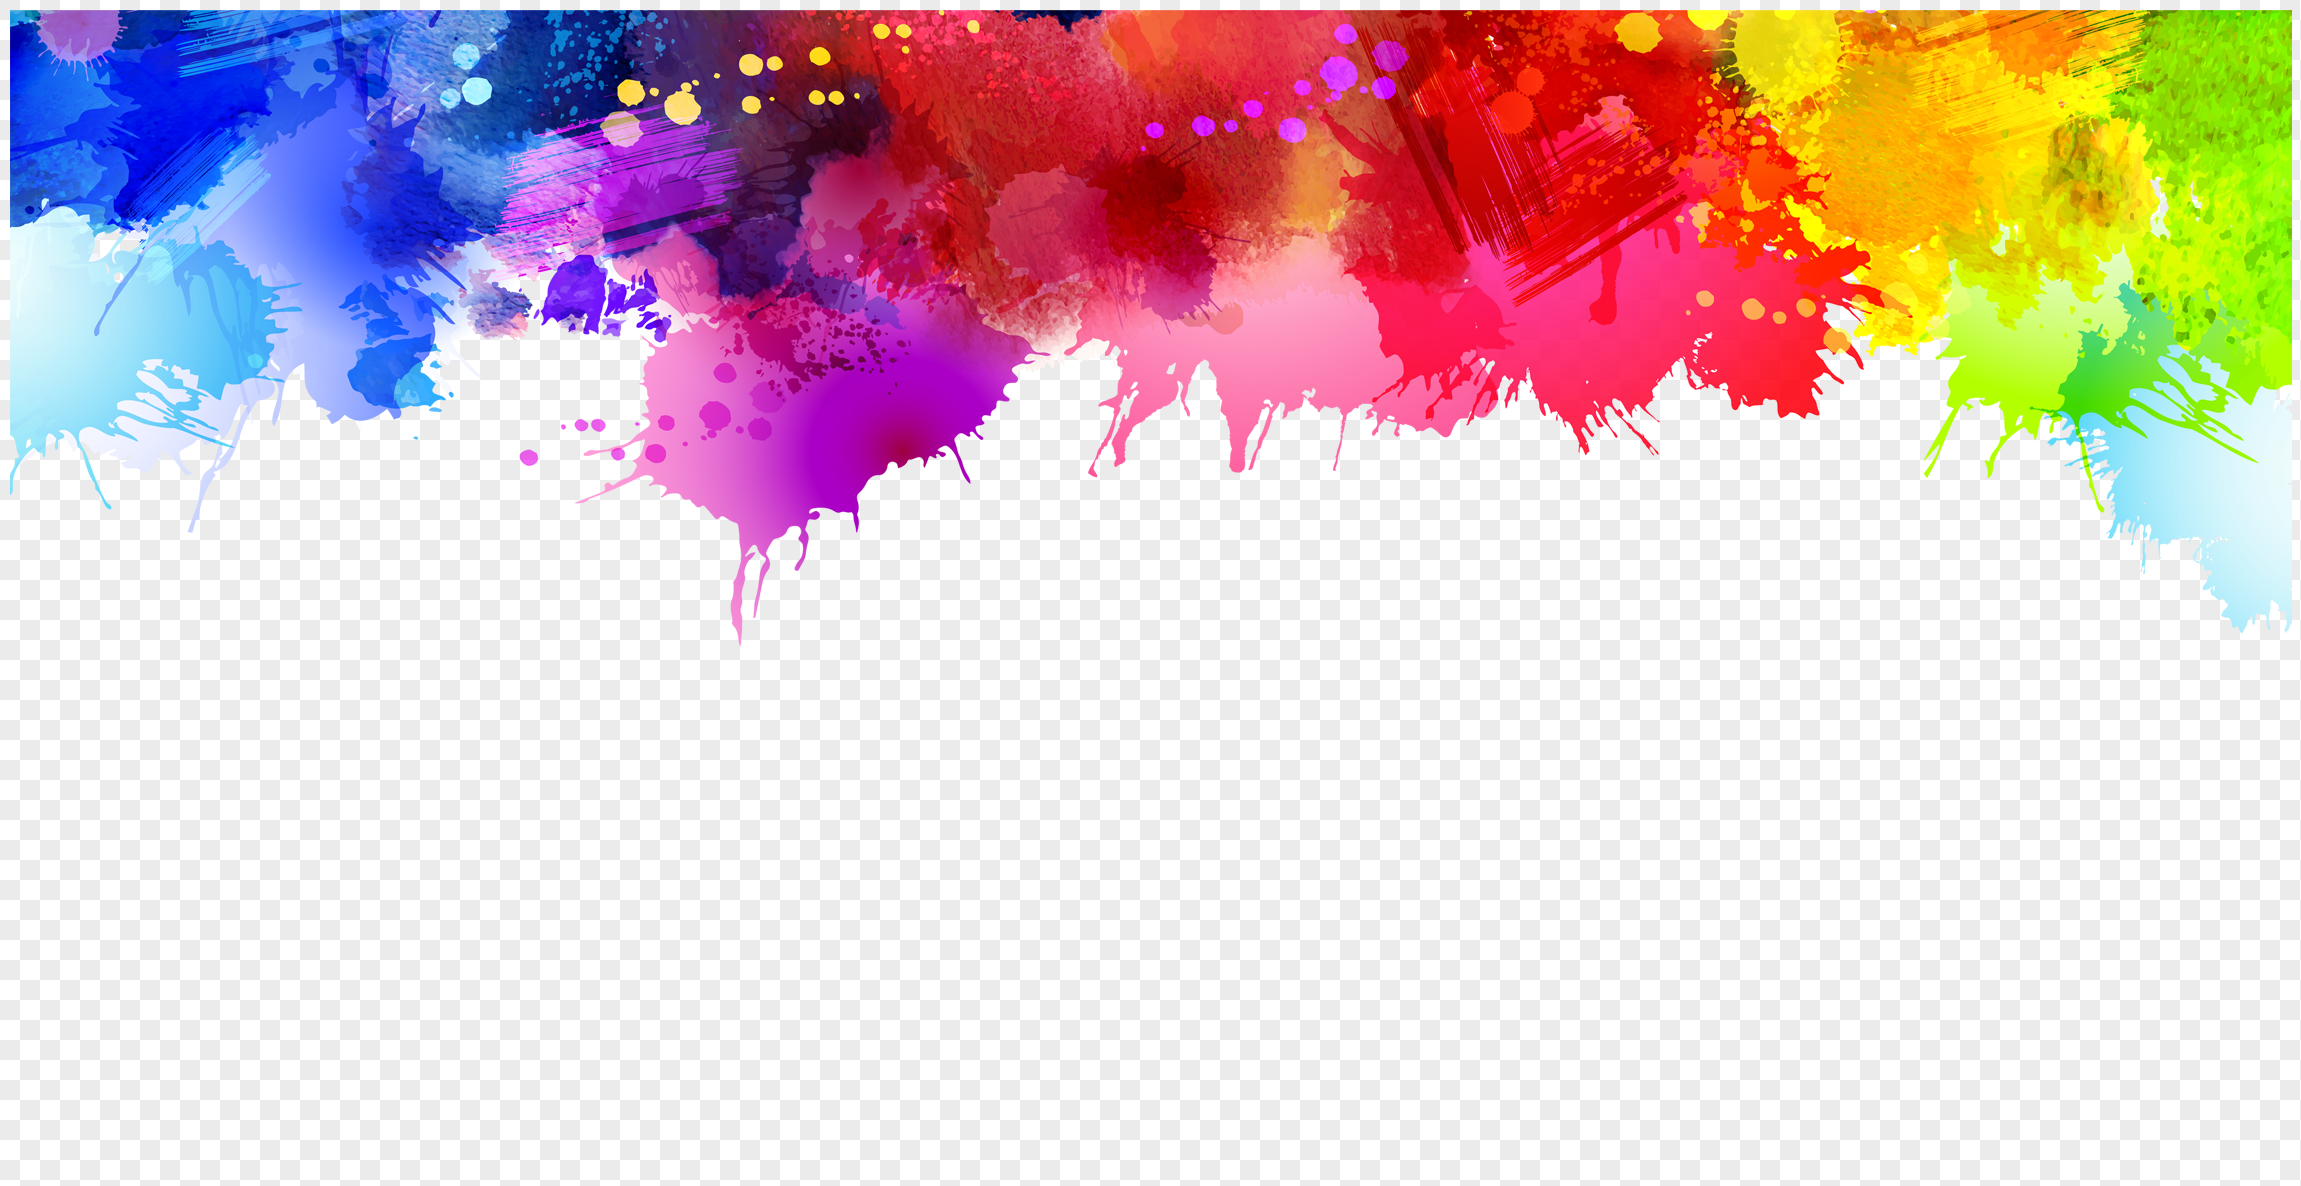 Water Color Splash Png Image_picture Free Download